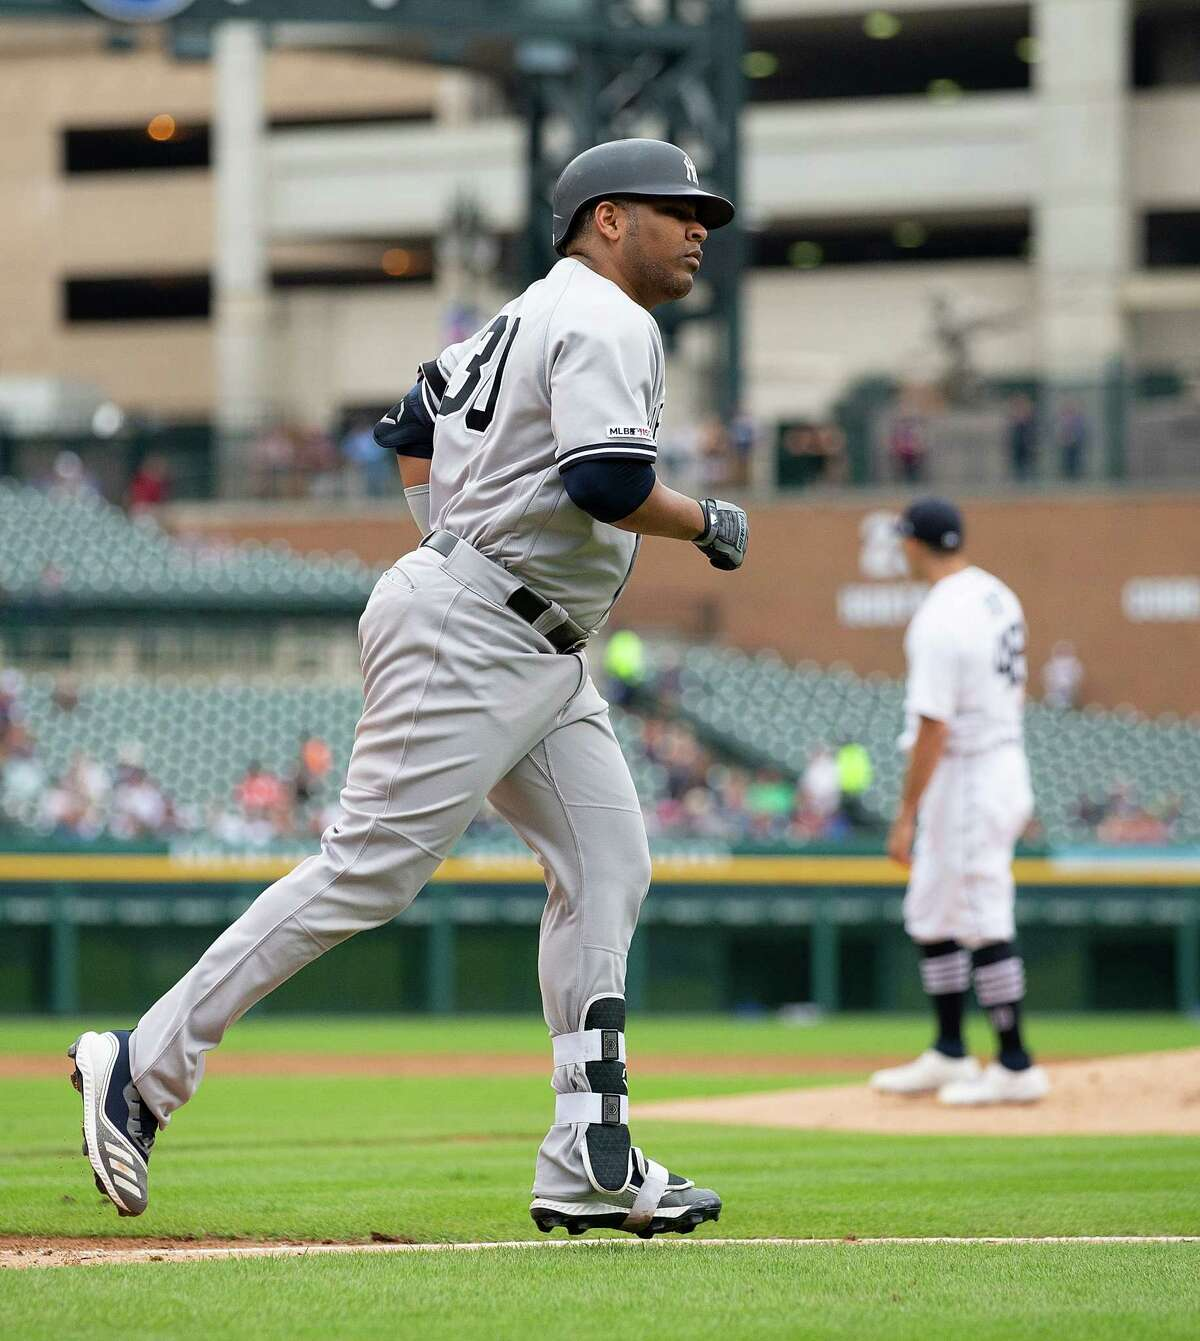 DETROIT, MI - SEPTEMBER 12: Edwin Encarnacion #30 of the New York Yankees rounds the bases on his two-run home run in the third inning of game one of a double header against the Detroit Tigers at Comerica Park on September 12, 2019 in Detroit, Michigan. (Photo by Leon Halip/Getty Images)